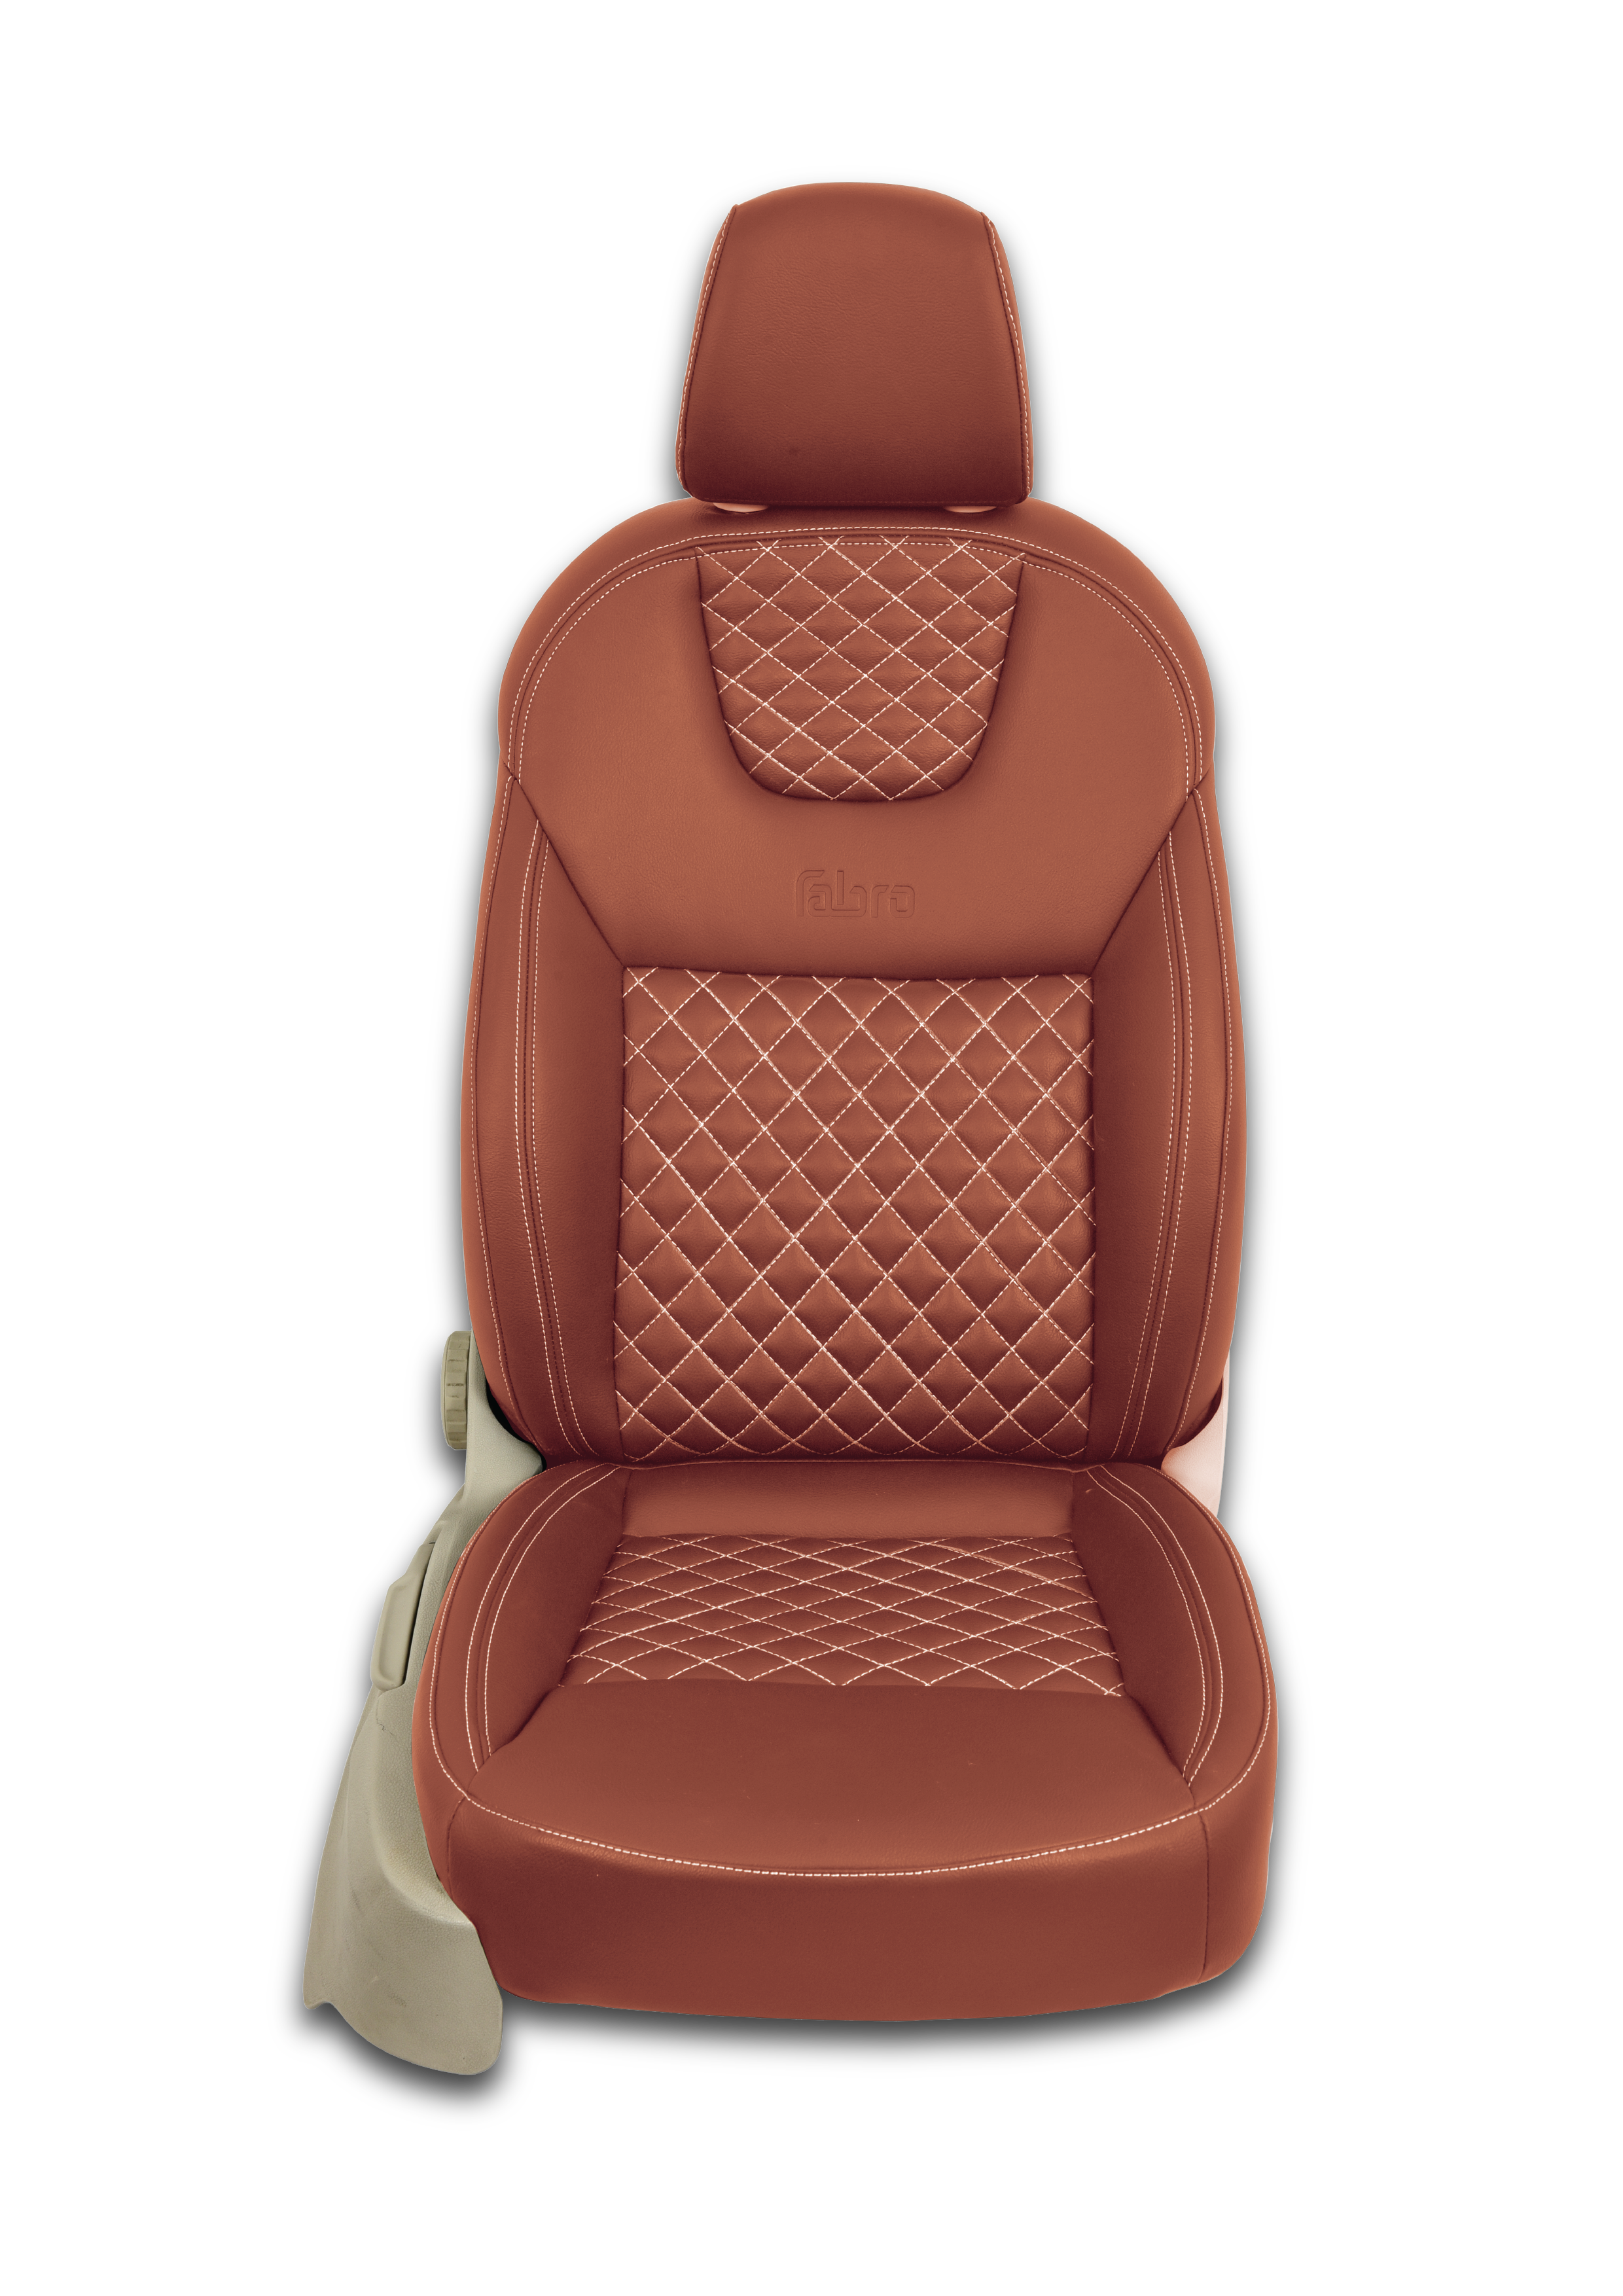 FABRO ART LEATHER SEAT COVER FOR TATA HARRIER